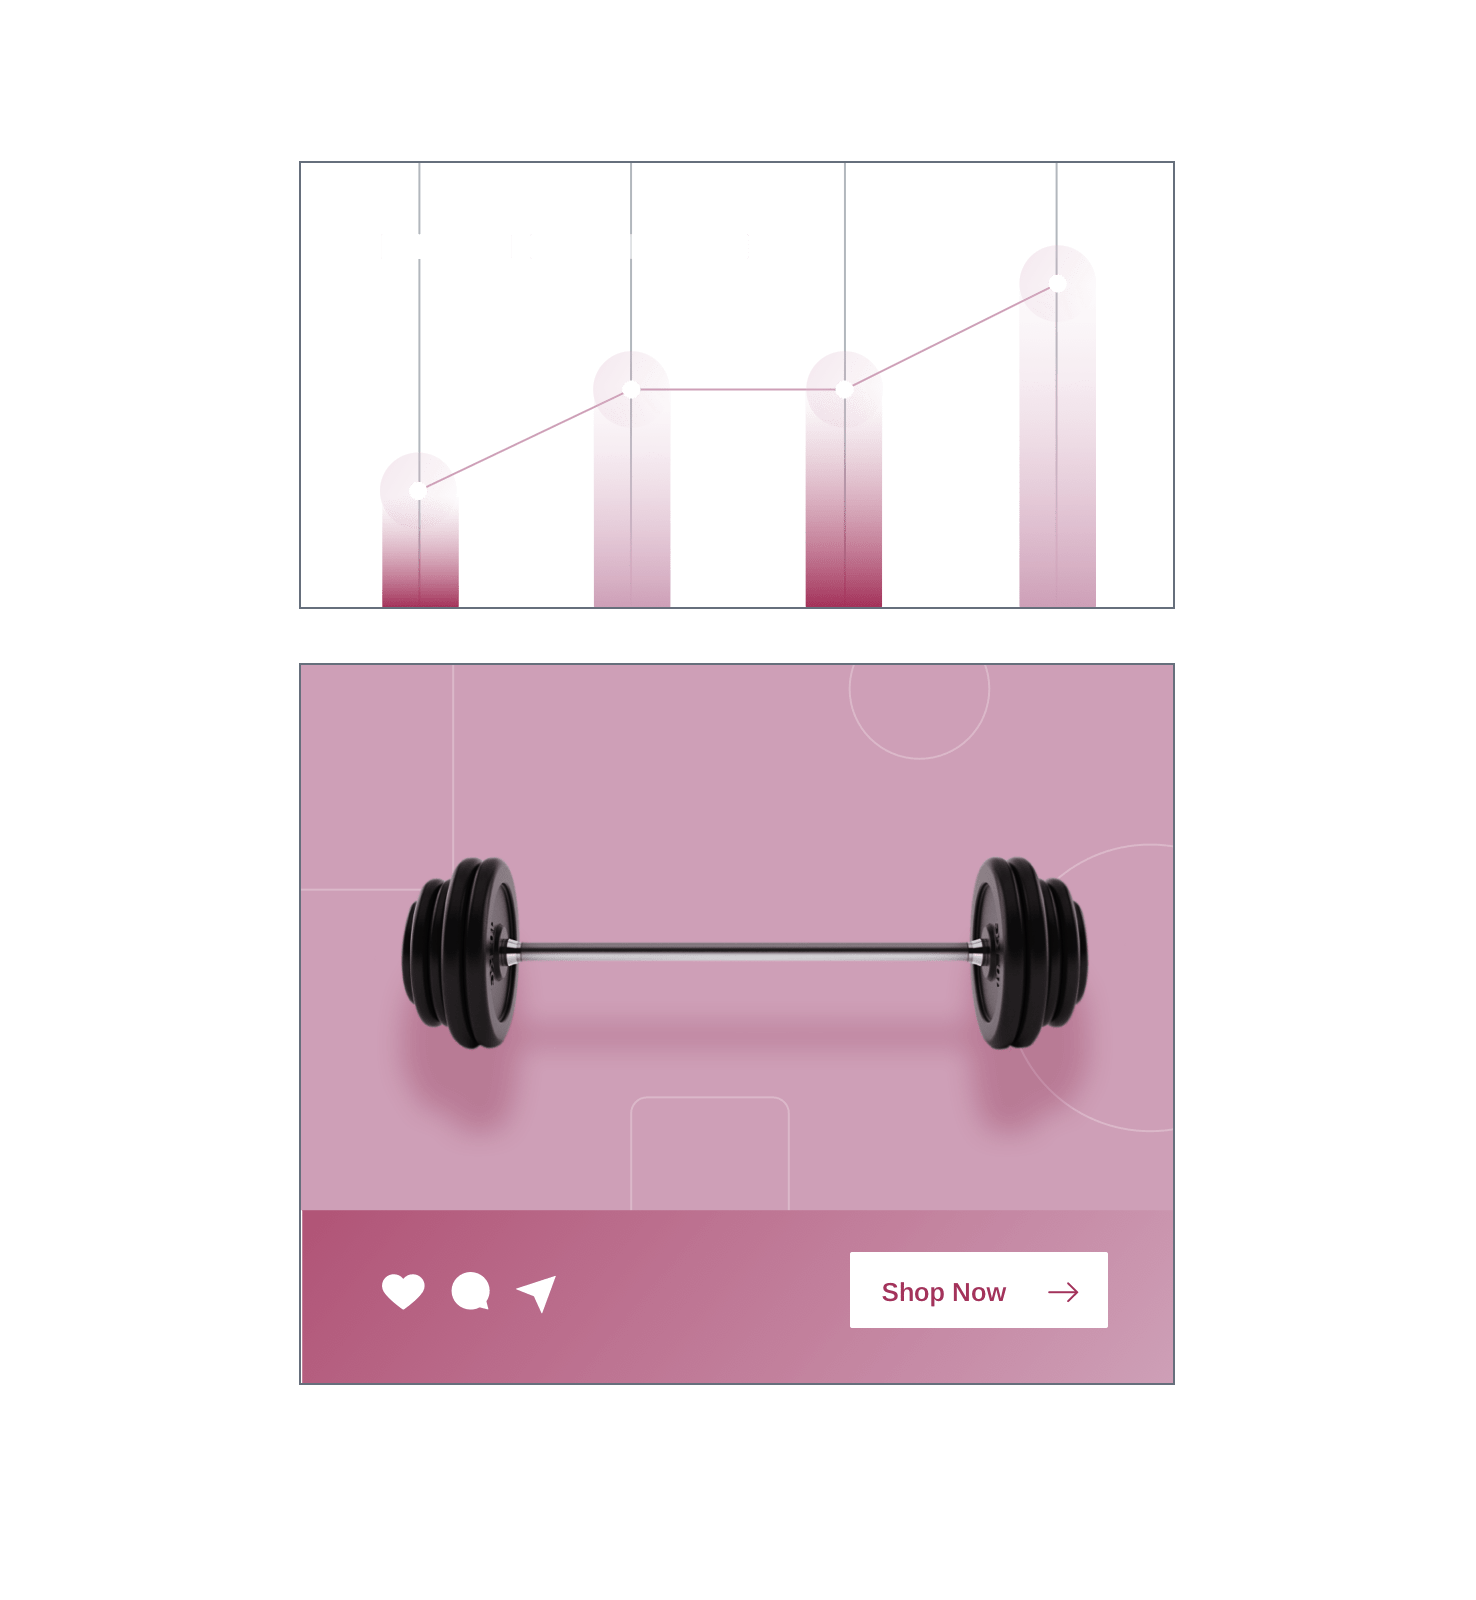 Bar chart and line graph data insights above a sample shopping ad for weights